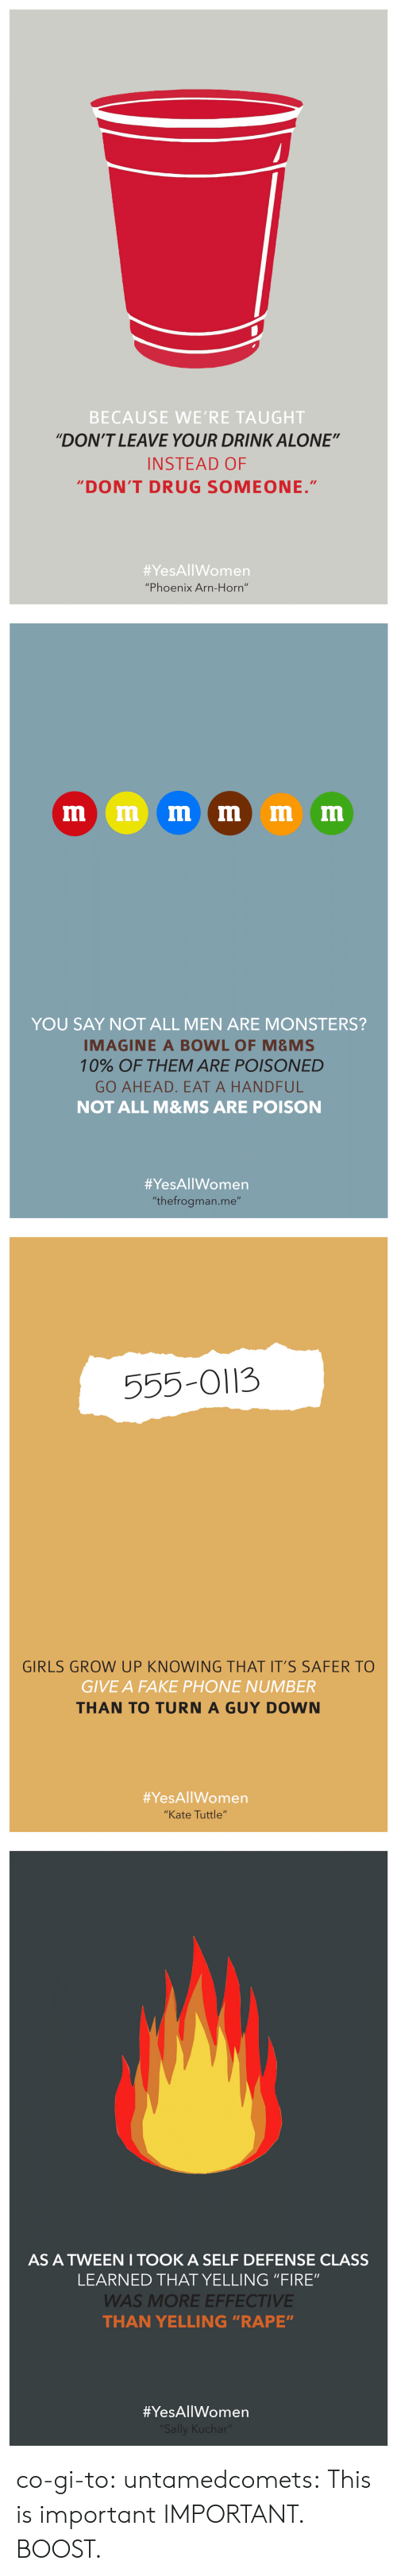 """Horning: BECAUSE WE'RE TAUGHT  """"DON'T LEAVE YOUR DRINK ALONE""""  INSTEAD OF  DON'T DRUG SOMEONE.""""  #YesAllWomen  """"Phoenix Arn-Horn""""   YOU SAY NOT ALL MEN ARE MONSTERS?  IMAGINE A BOWL OF M&MS  10% OF THEM ARE POISONED  GO AHEAD. EAT A HANDFUL  NOT ALL M&MS ARE POISON  #YesAllWomen  """"thefrogman.me""""   555-O113  GIRLS GROW UP KNOWING THAT IT'S SAFER TO  GIVE A FAKE PHONE NUMBER  THAN TO TURN A GUY DOWN  #YesAllWomen  """"Kate Tuttle""""   AS A TWEEN I TOOK A SELF DEFENSE CLASS  LEARNED THAT YELLING """"FIRE""""  WAS MORE EFFECTIVE  THAN YELLING """"RAPE""""  co-gi-to:  untamedcomets:  This is important  IMPORTANT. BOOST."""